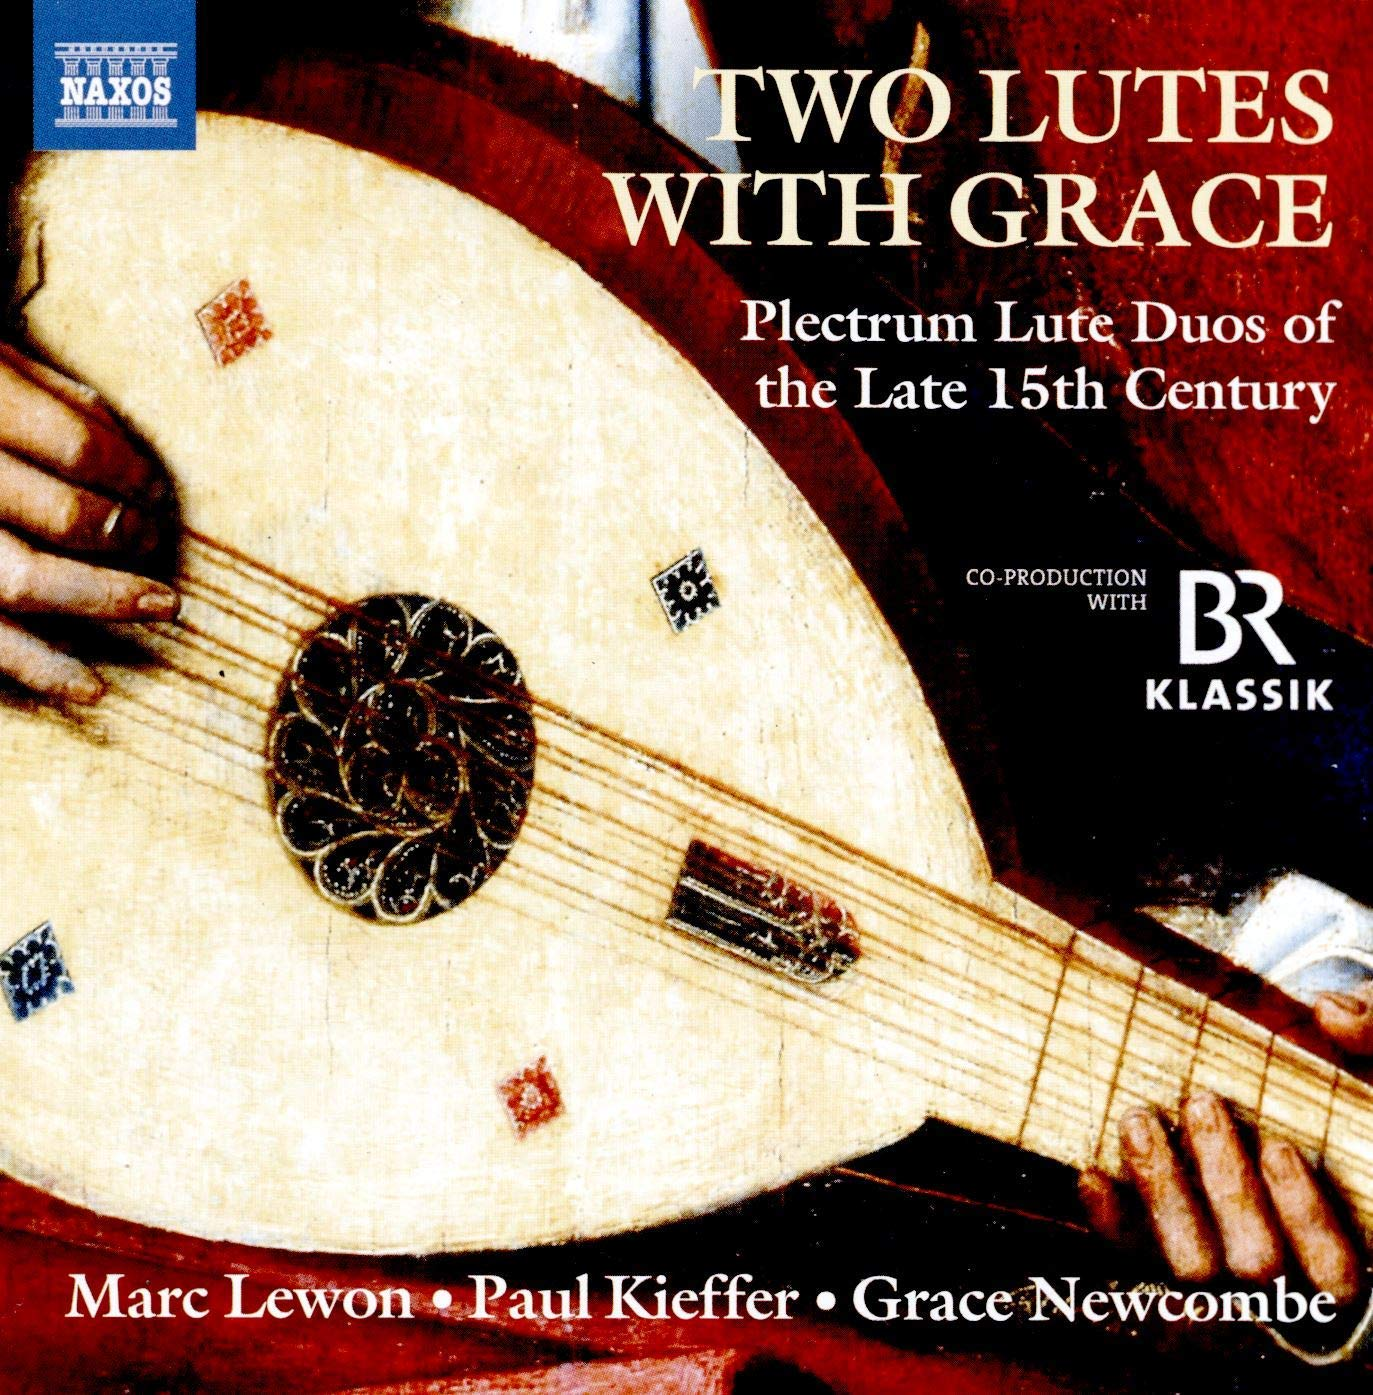 Review of Two Lutes with Grace (Marc Lewon, Paul Kieffer)